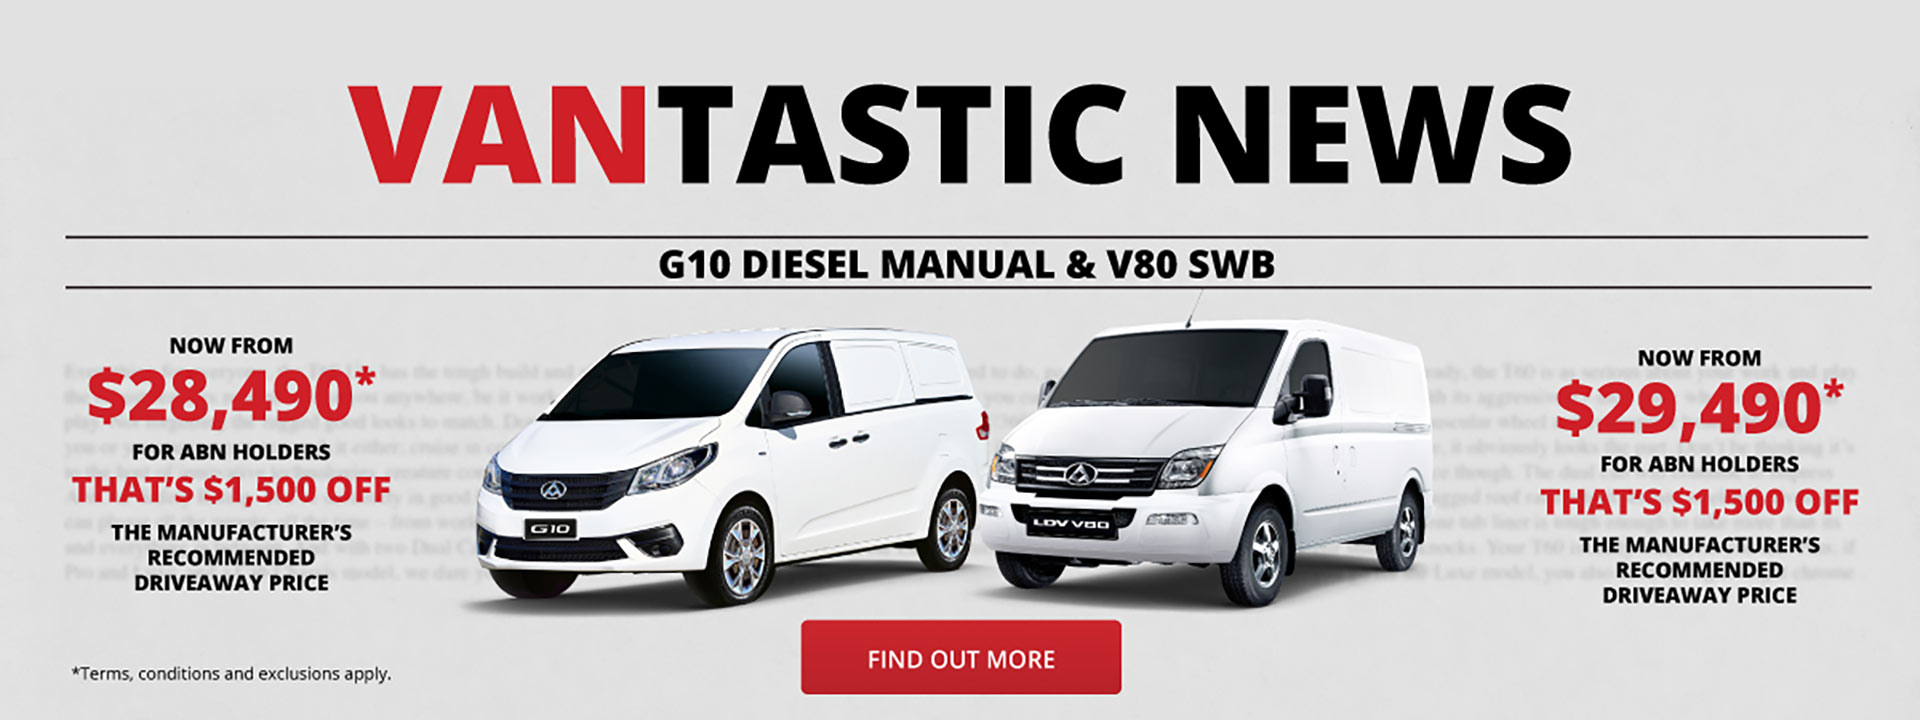 LDV Vantastic News